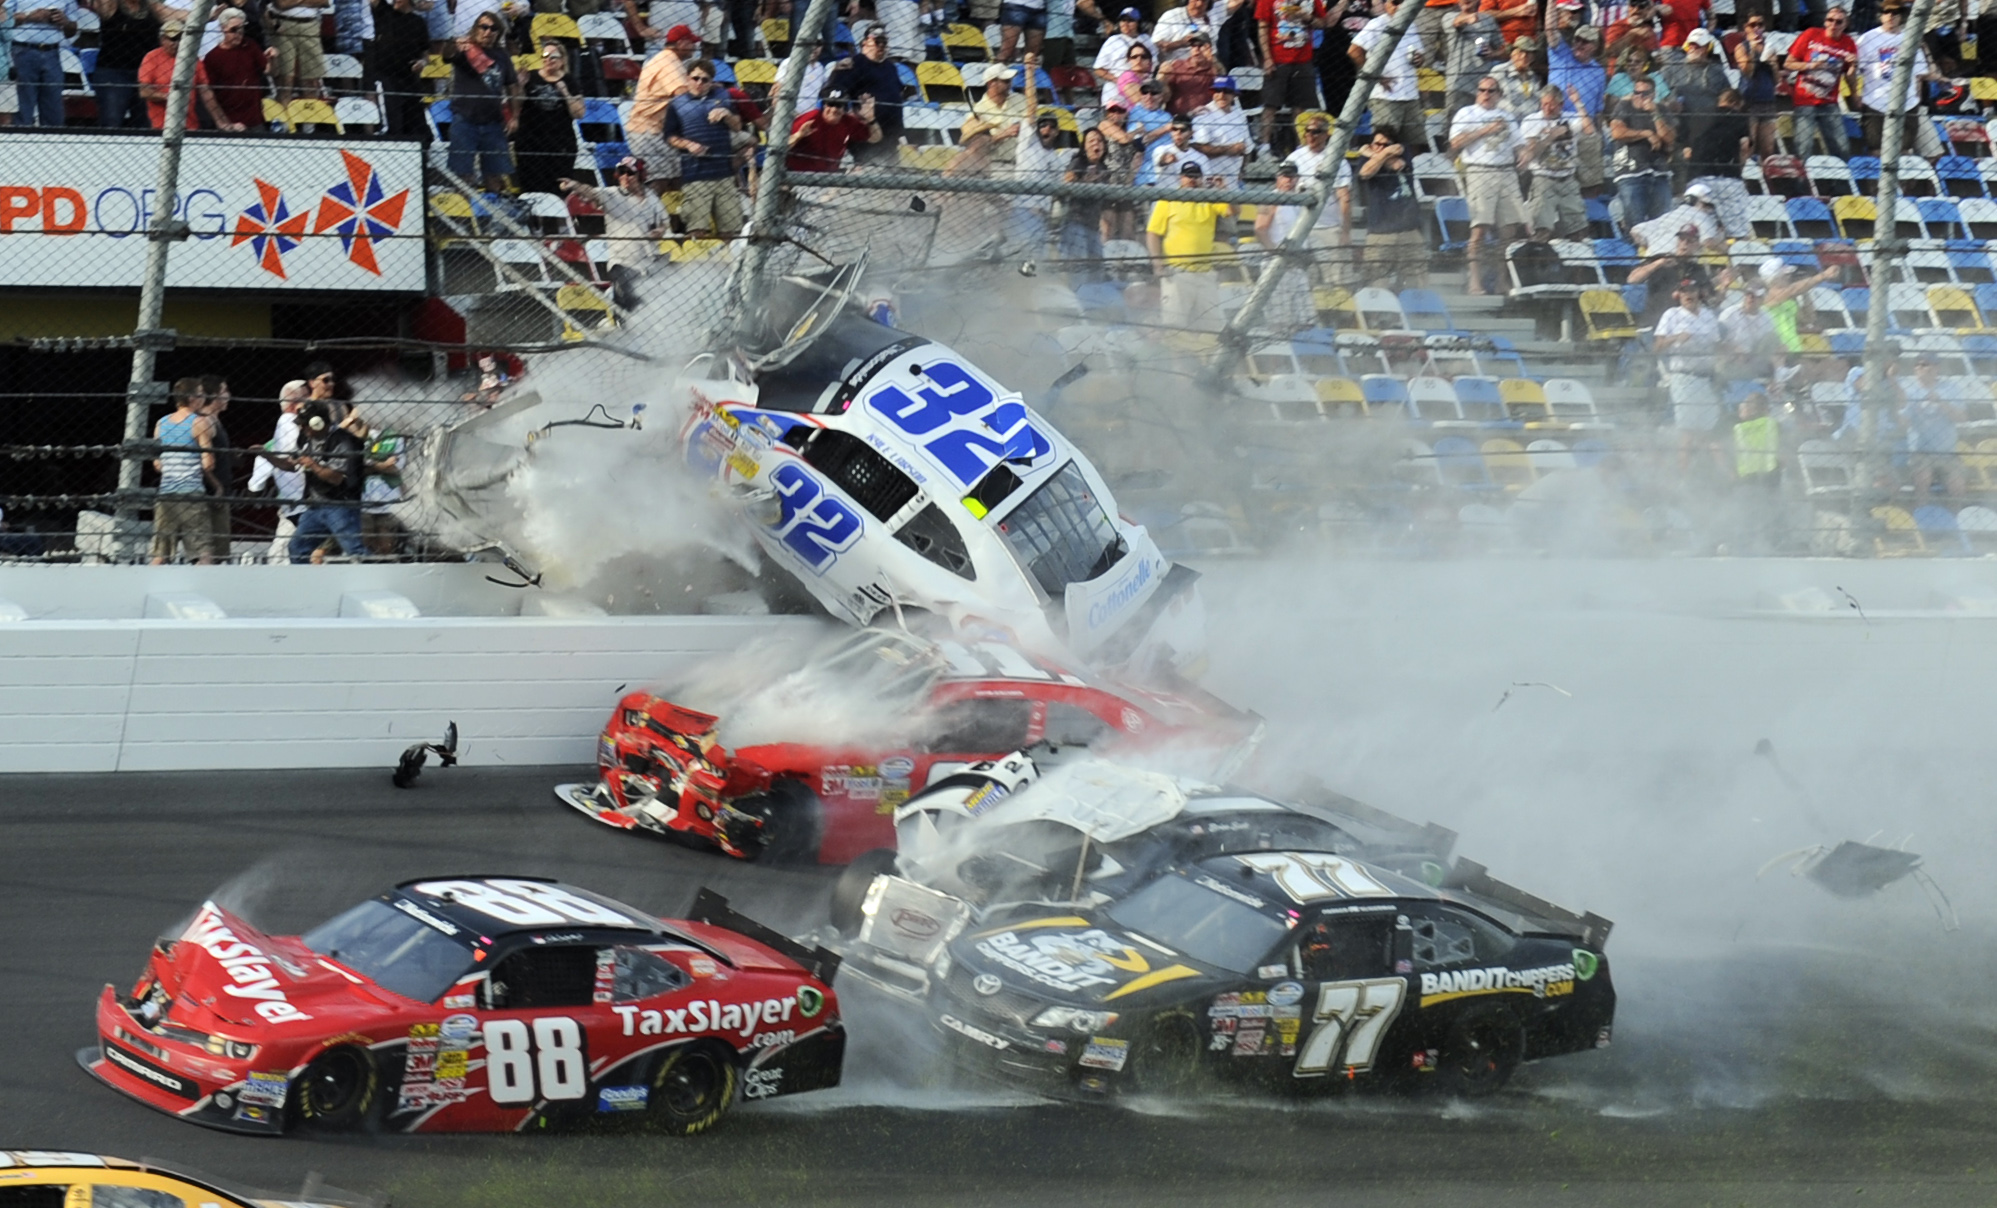 Kyle Larson goes up into the fence near Section I at Daytona International Speedway. (USA Today Sports)